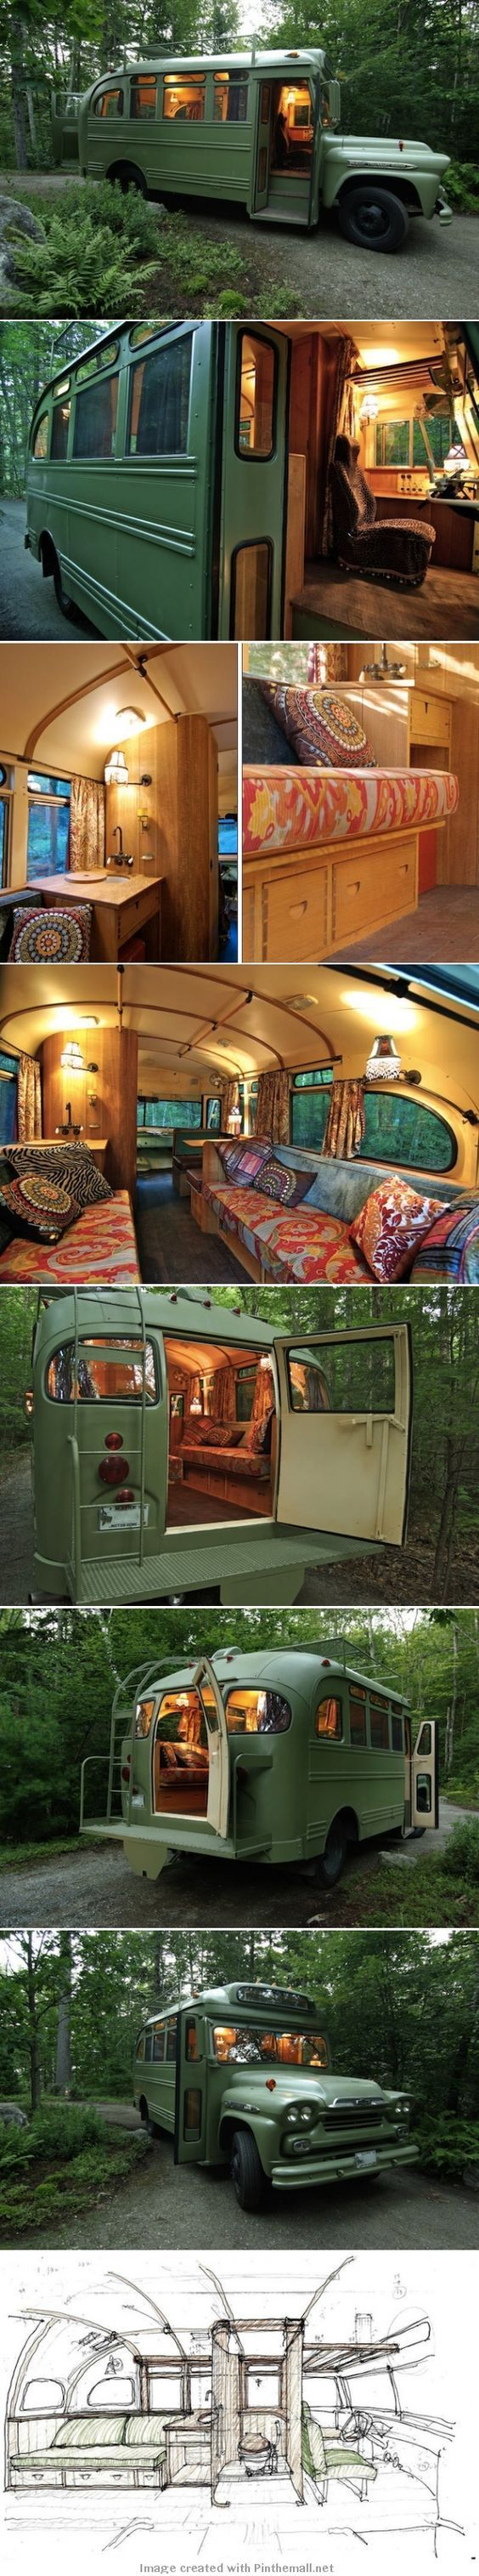 Cool Best Interior Design Ideas for Camper Van https://decoratio.co/2017/11/30/best-interior-design-ideas-camper-van/ You have to know precisely which sort of motorhome you're trying to find. Now you're aware that its possible to have a motorhome that might become reasonably superior gas mileage.